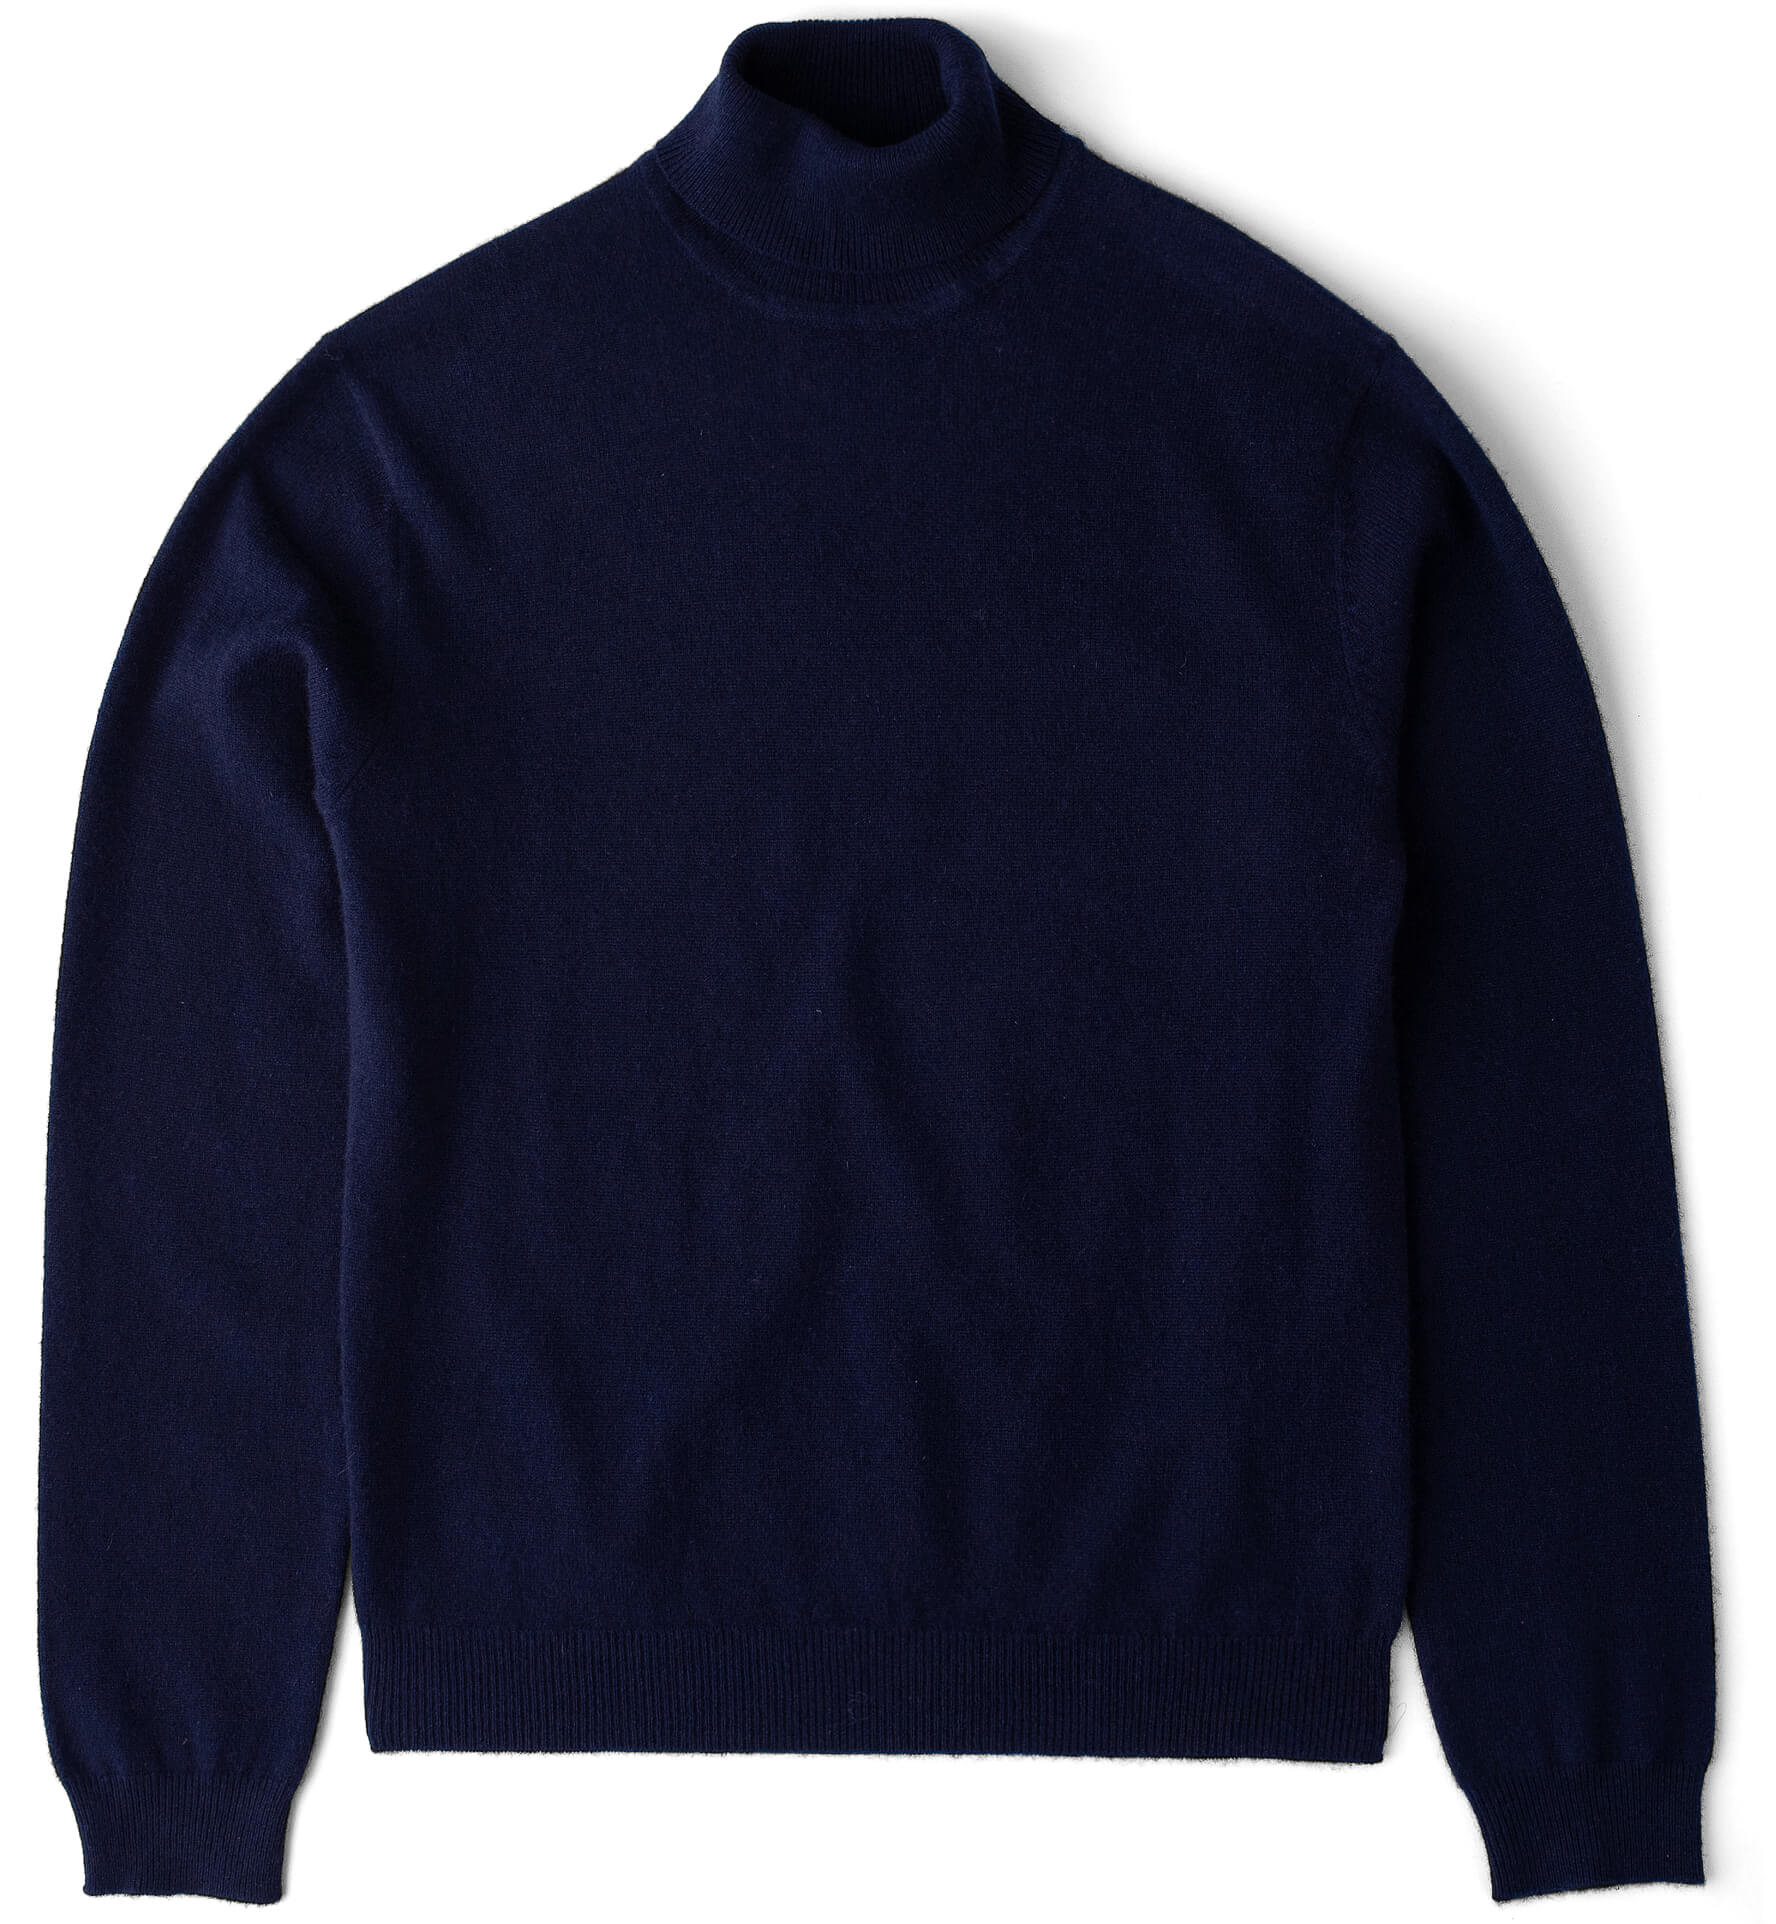 Zoom Image of Navy Cashmere Turtleneck Sweater